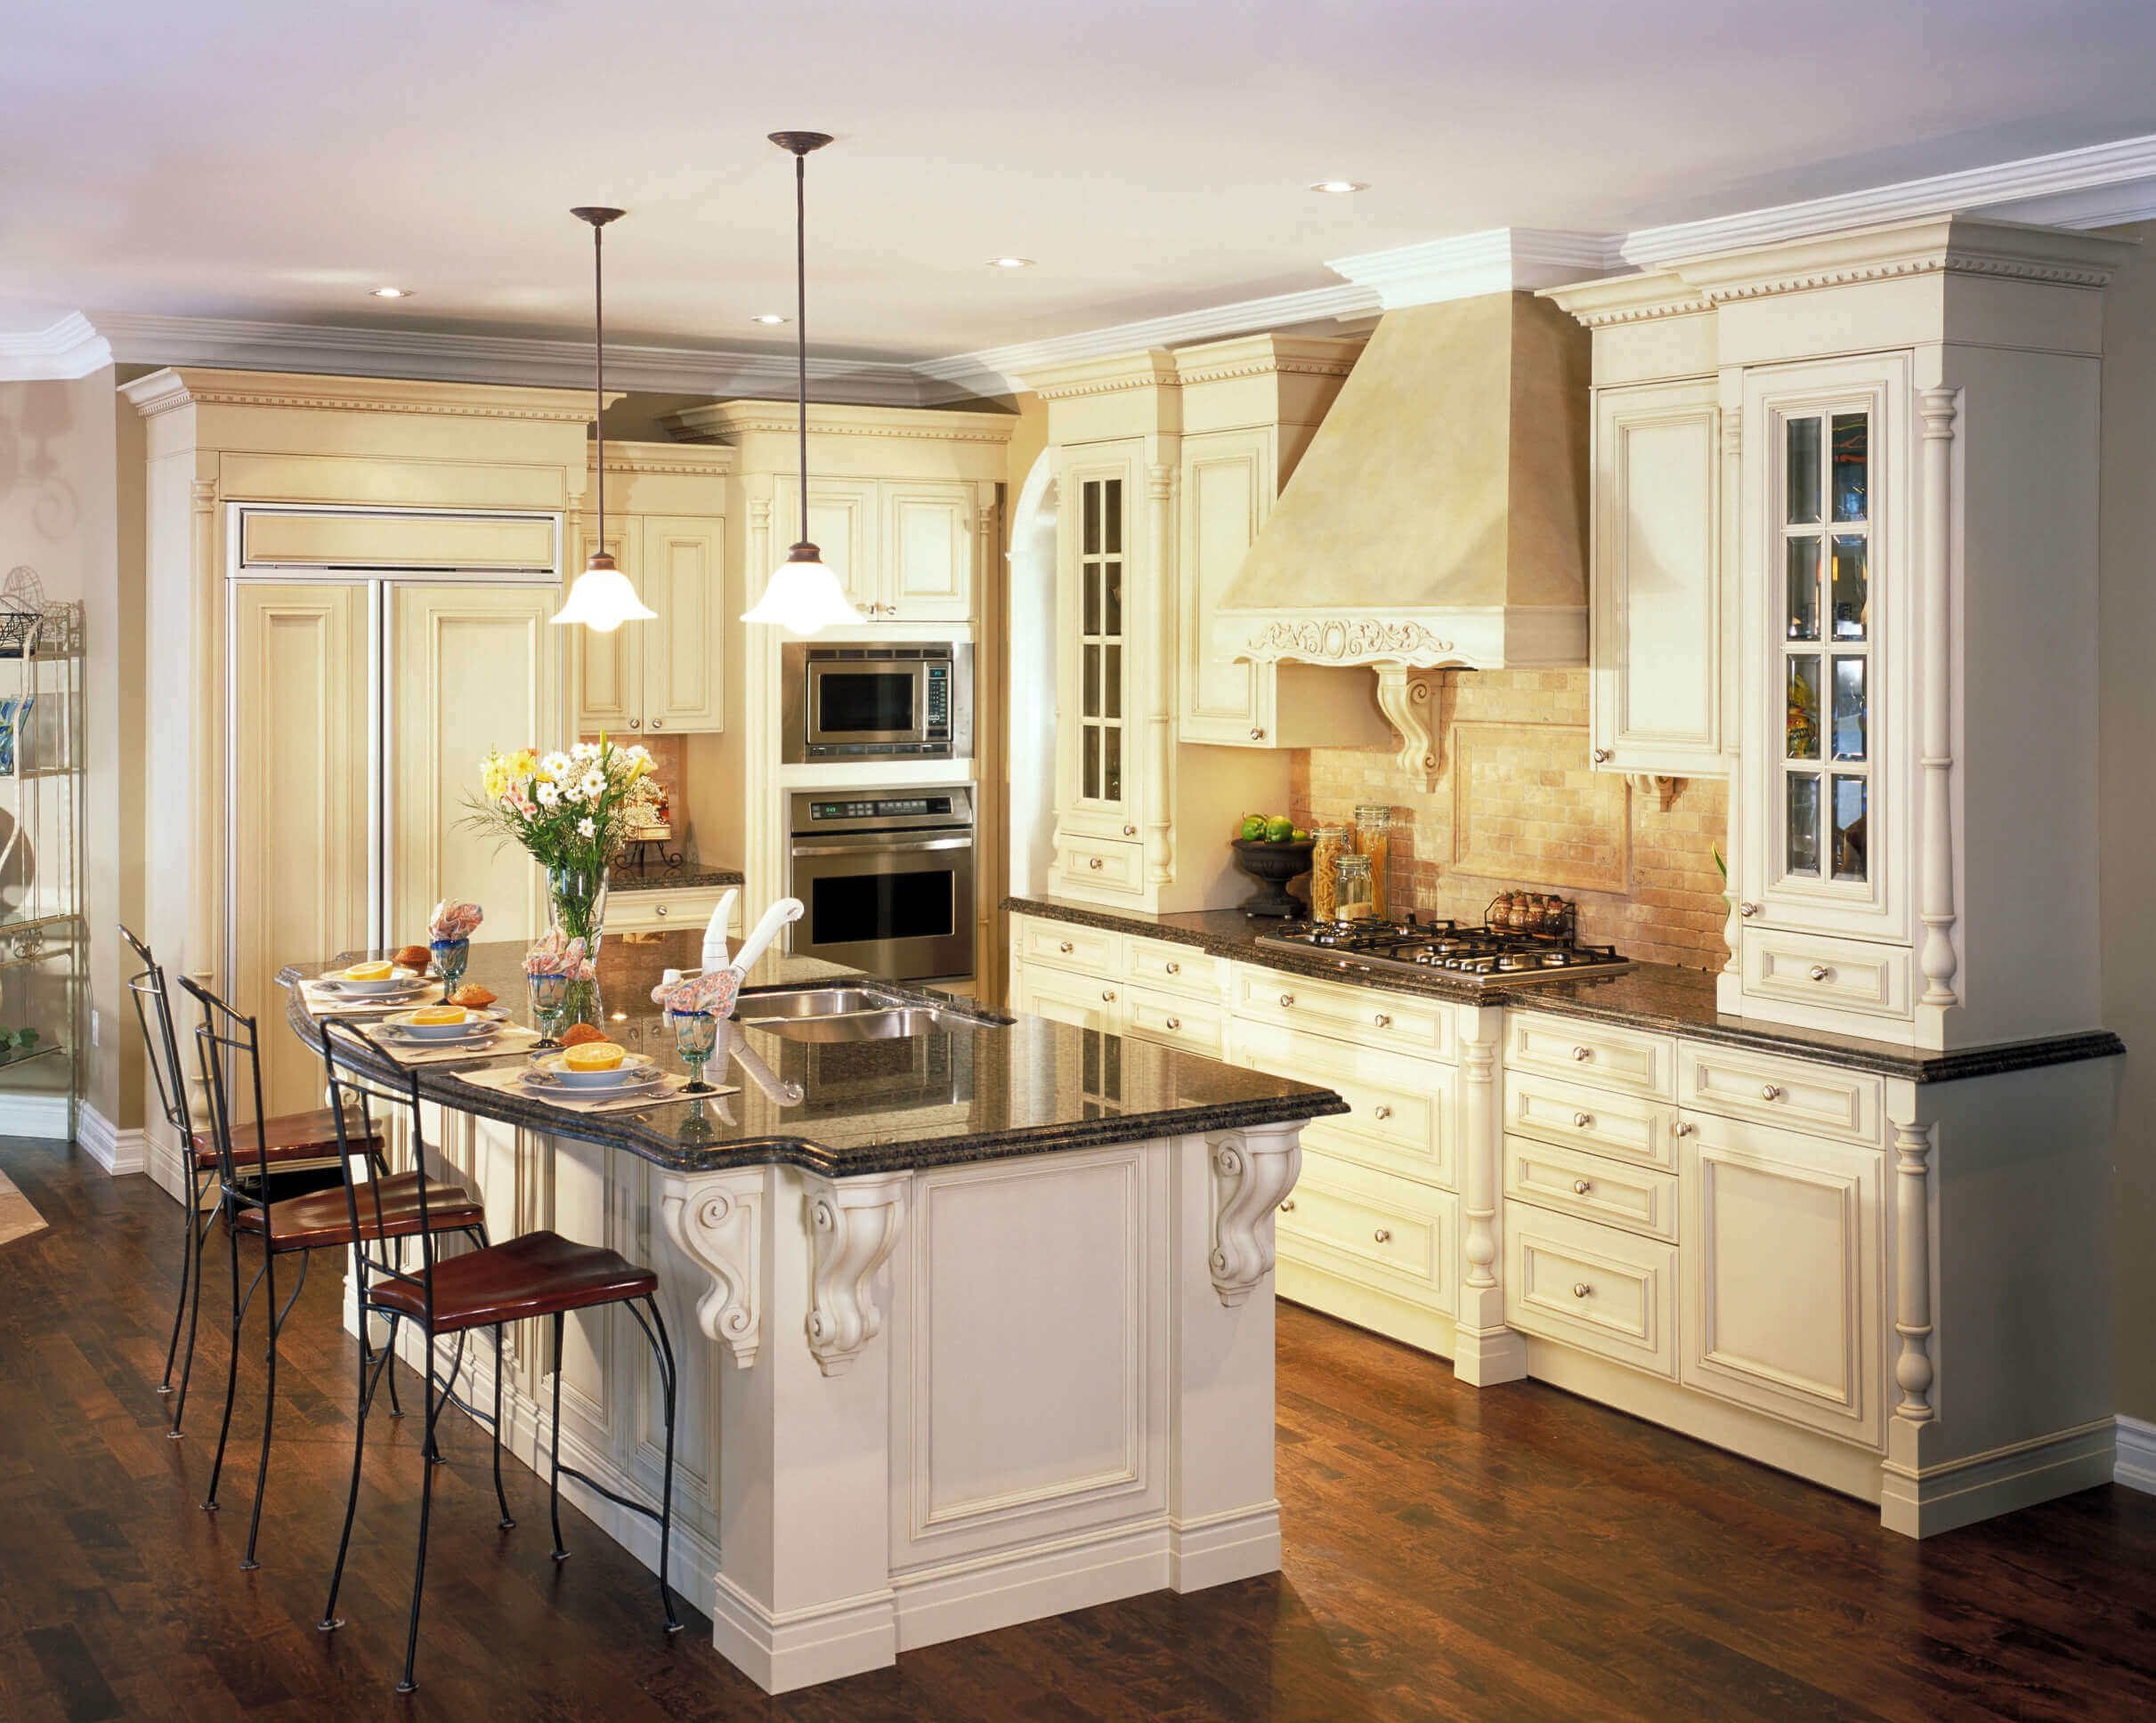 The marble countertops, white cabinets and two contemporary pendant lighting for kitchen give this contemporary kitchen space an elegant feel. The stainless steel appliances and fine wooden floor lend an updated look